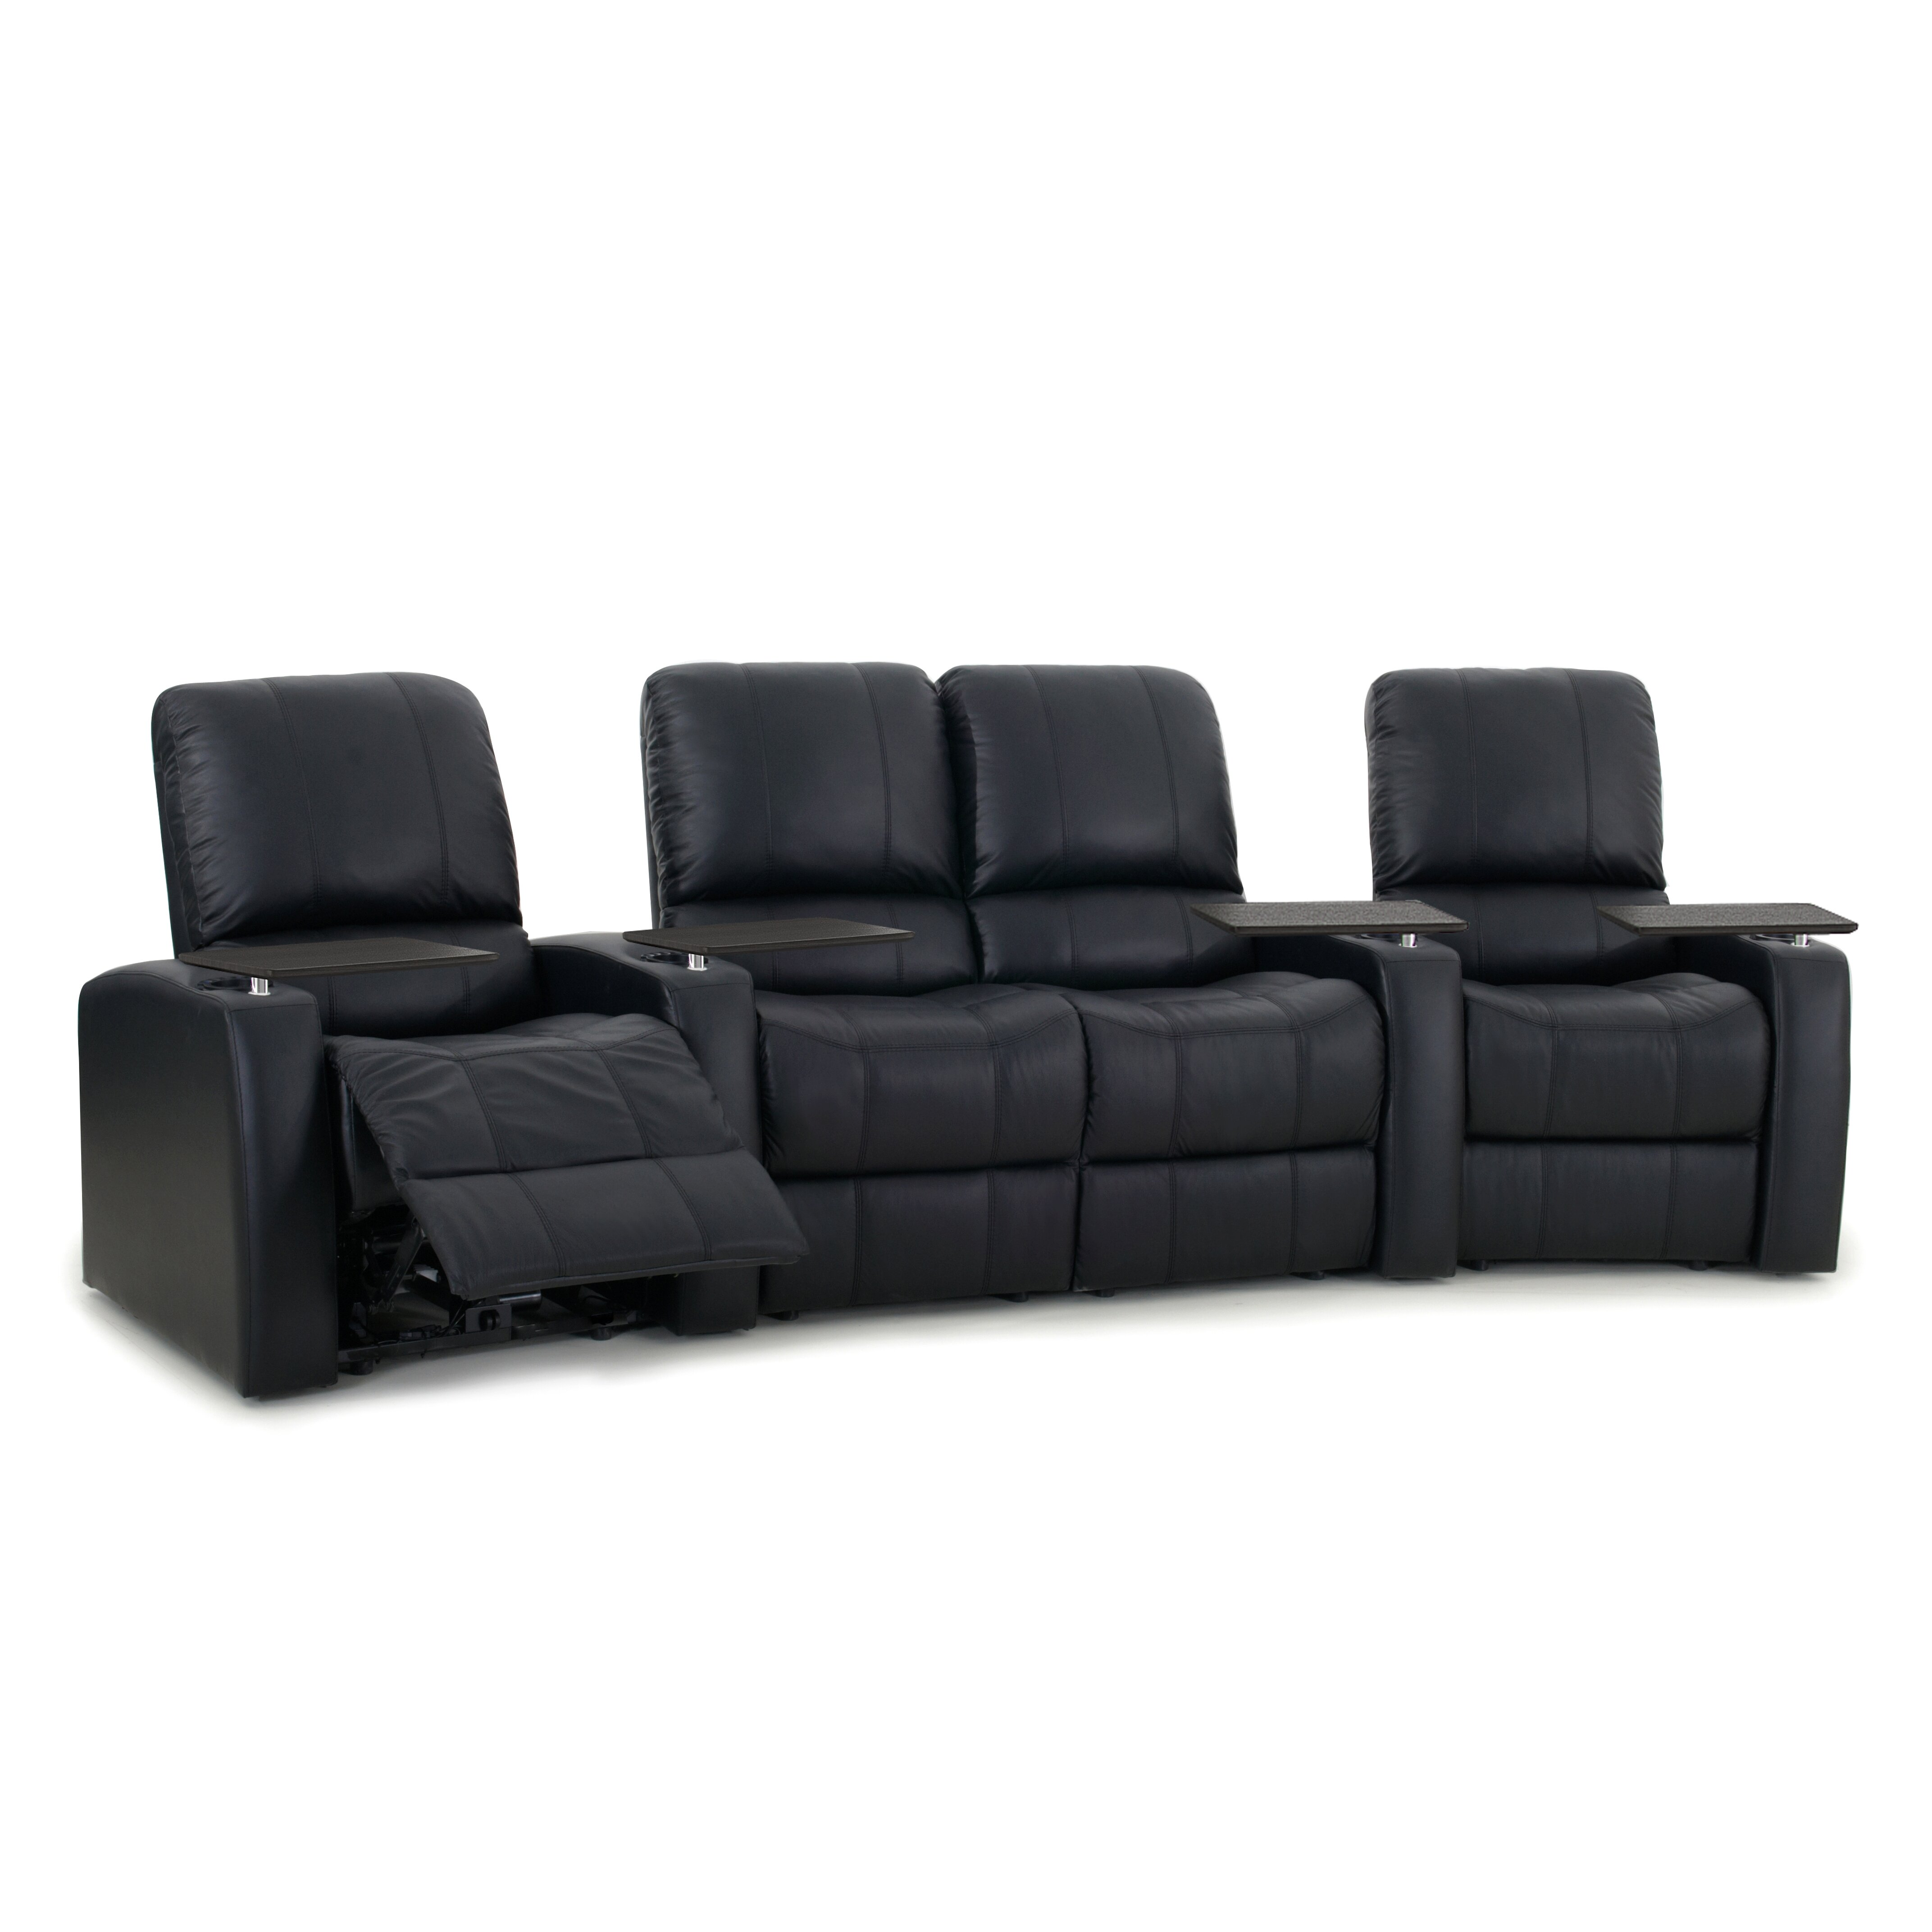 OctaneSeating Blaze XL900 Home Theatre Loveseat (Row of 4) : Wayfair.ca